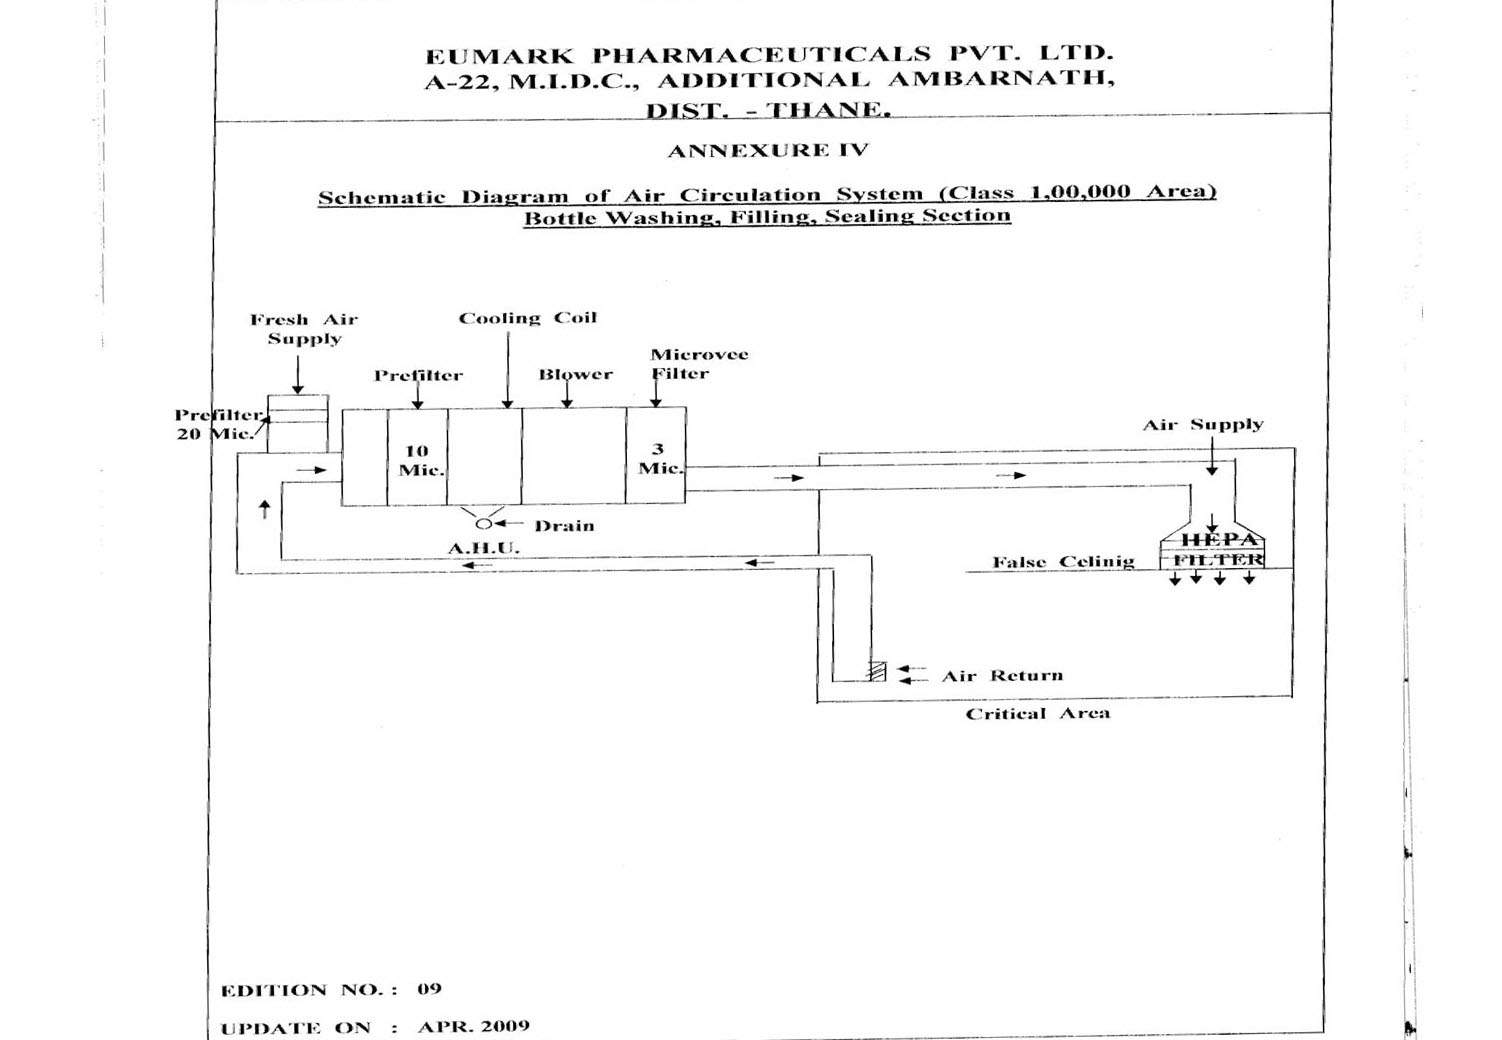 Hvac System Diagram Drawing Schematic Of Bottle Washing Filling Sealing Sections Class 100000